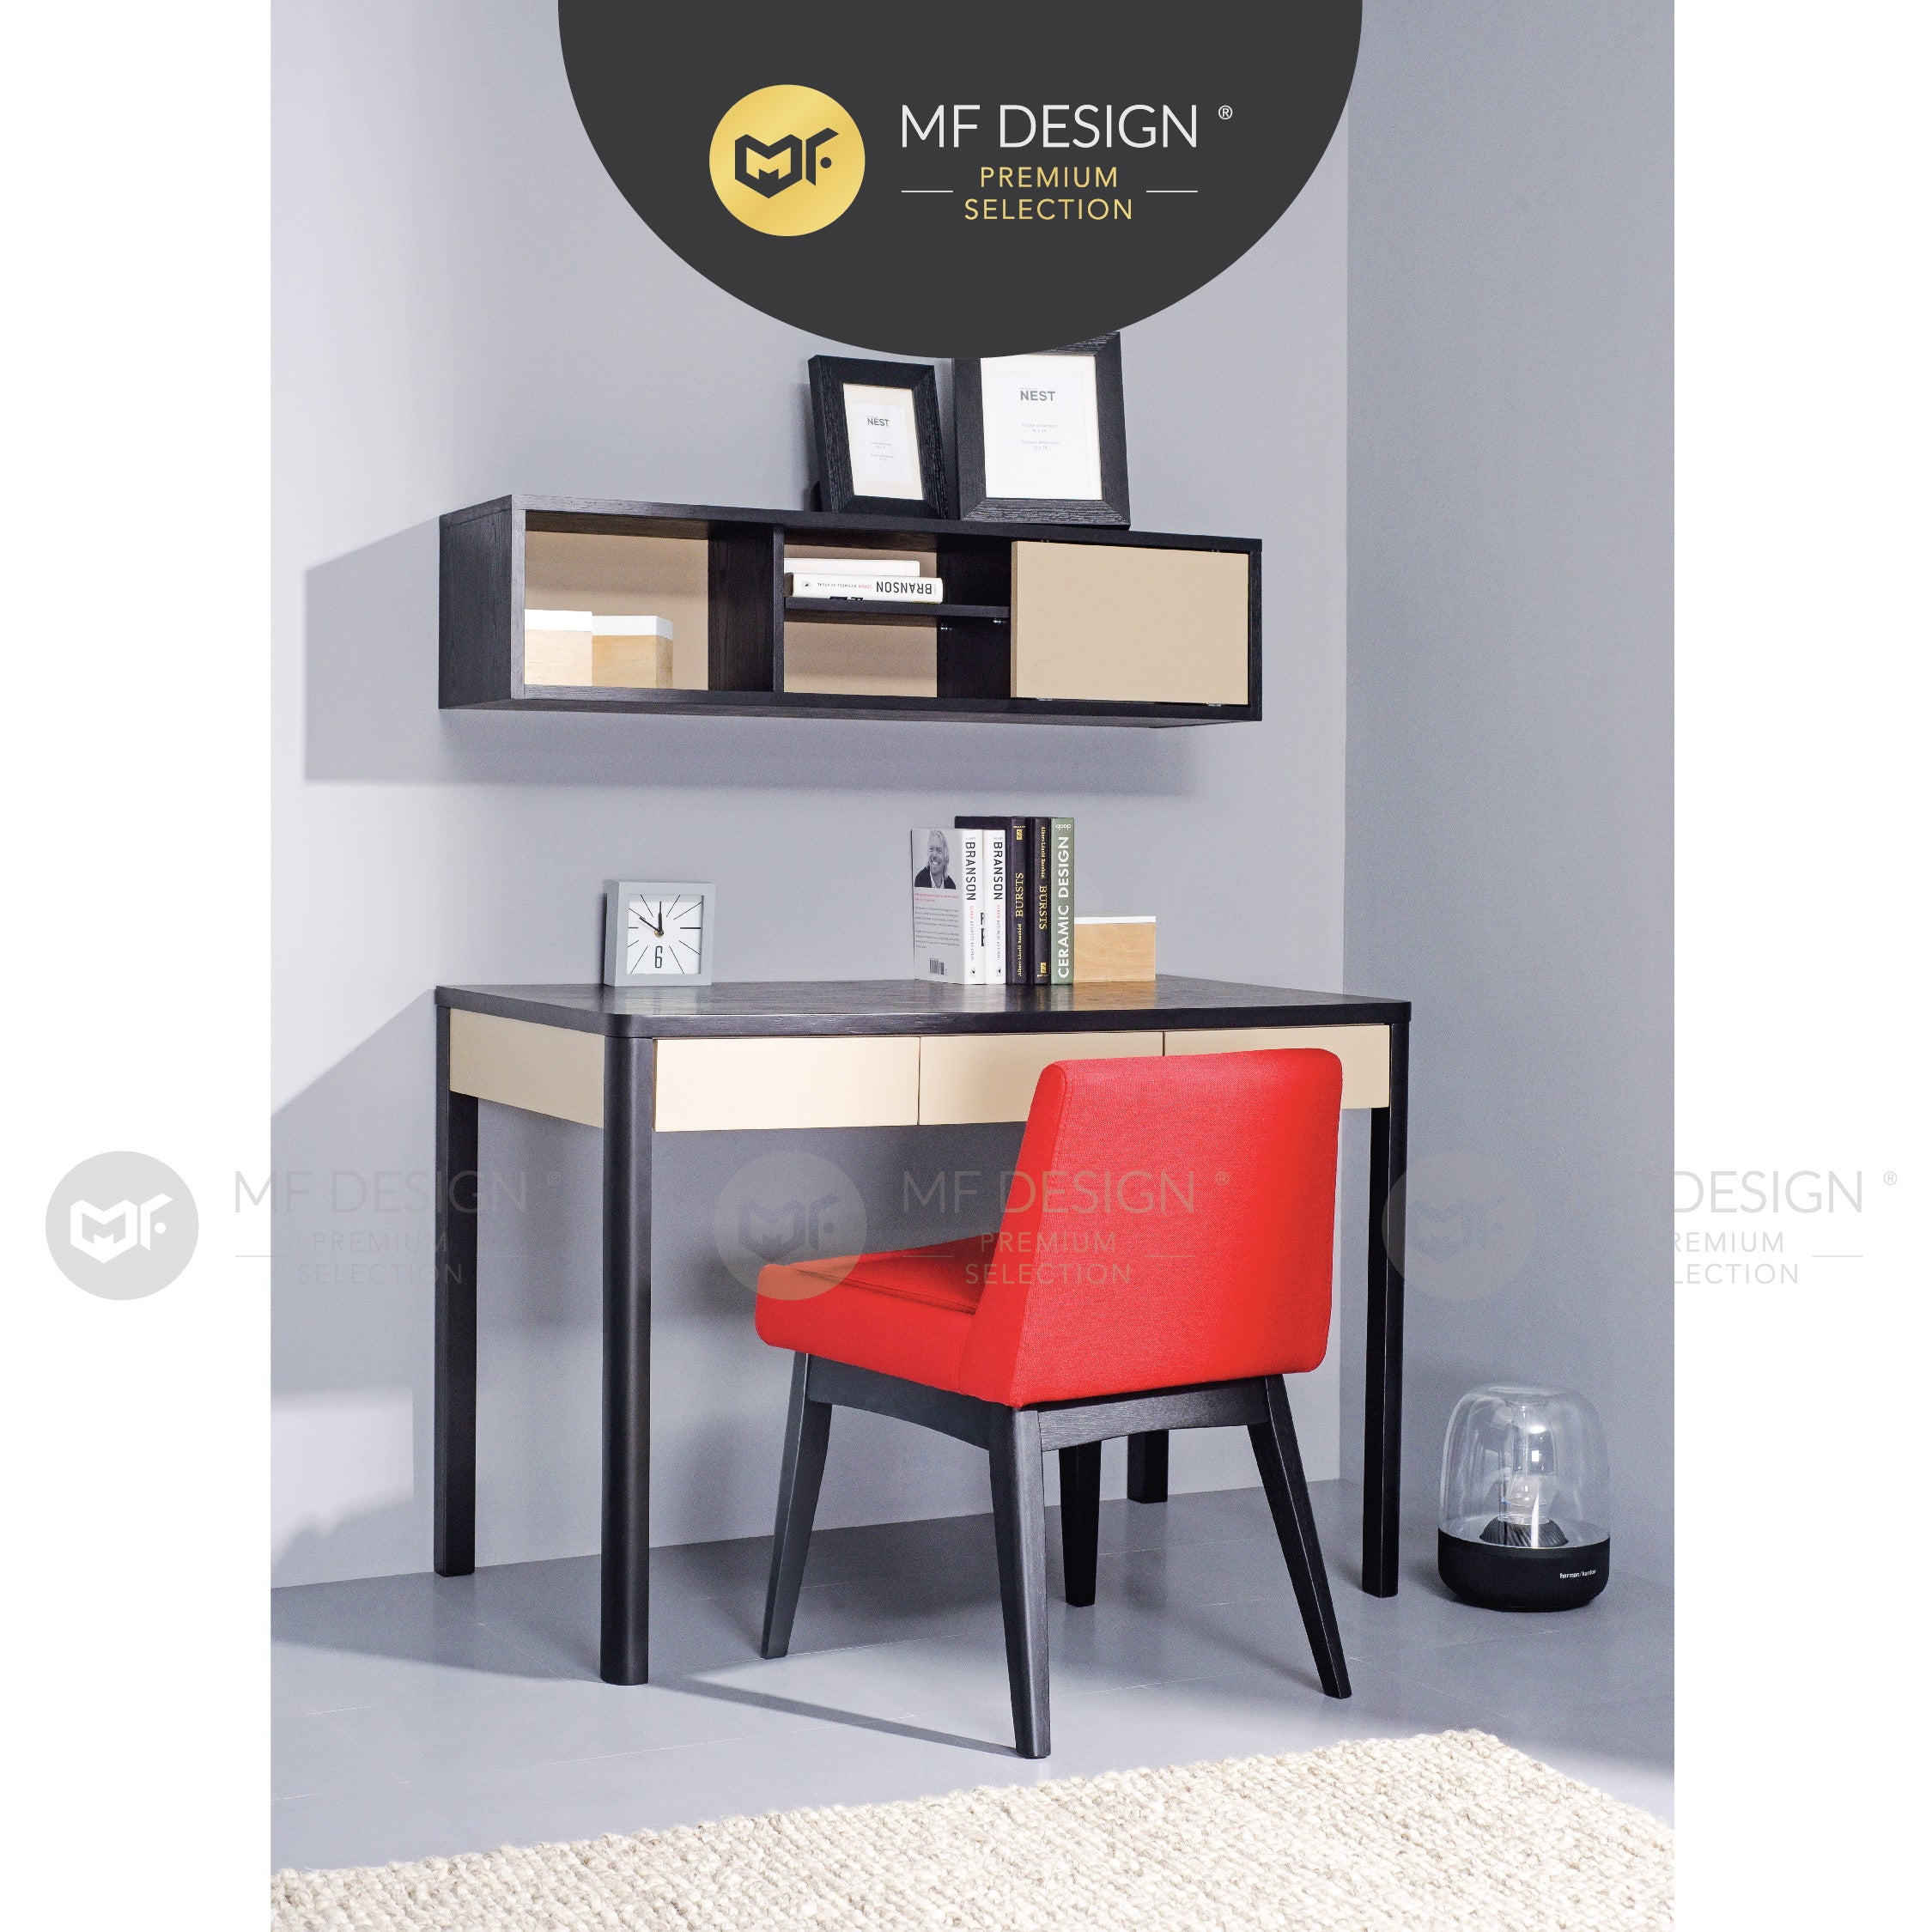 MFD Premium Caleb Dining Chair / kerusi / chair